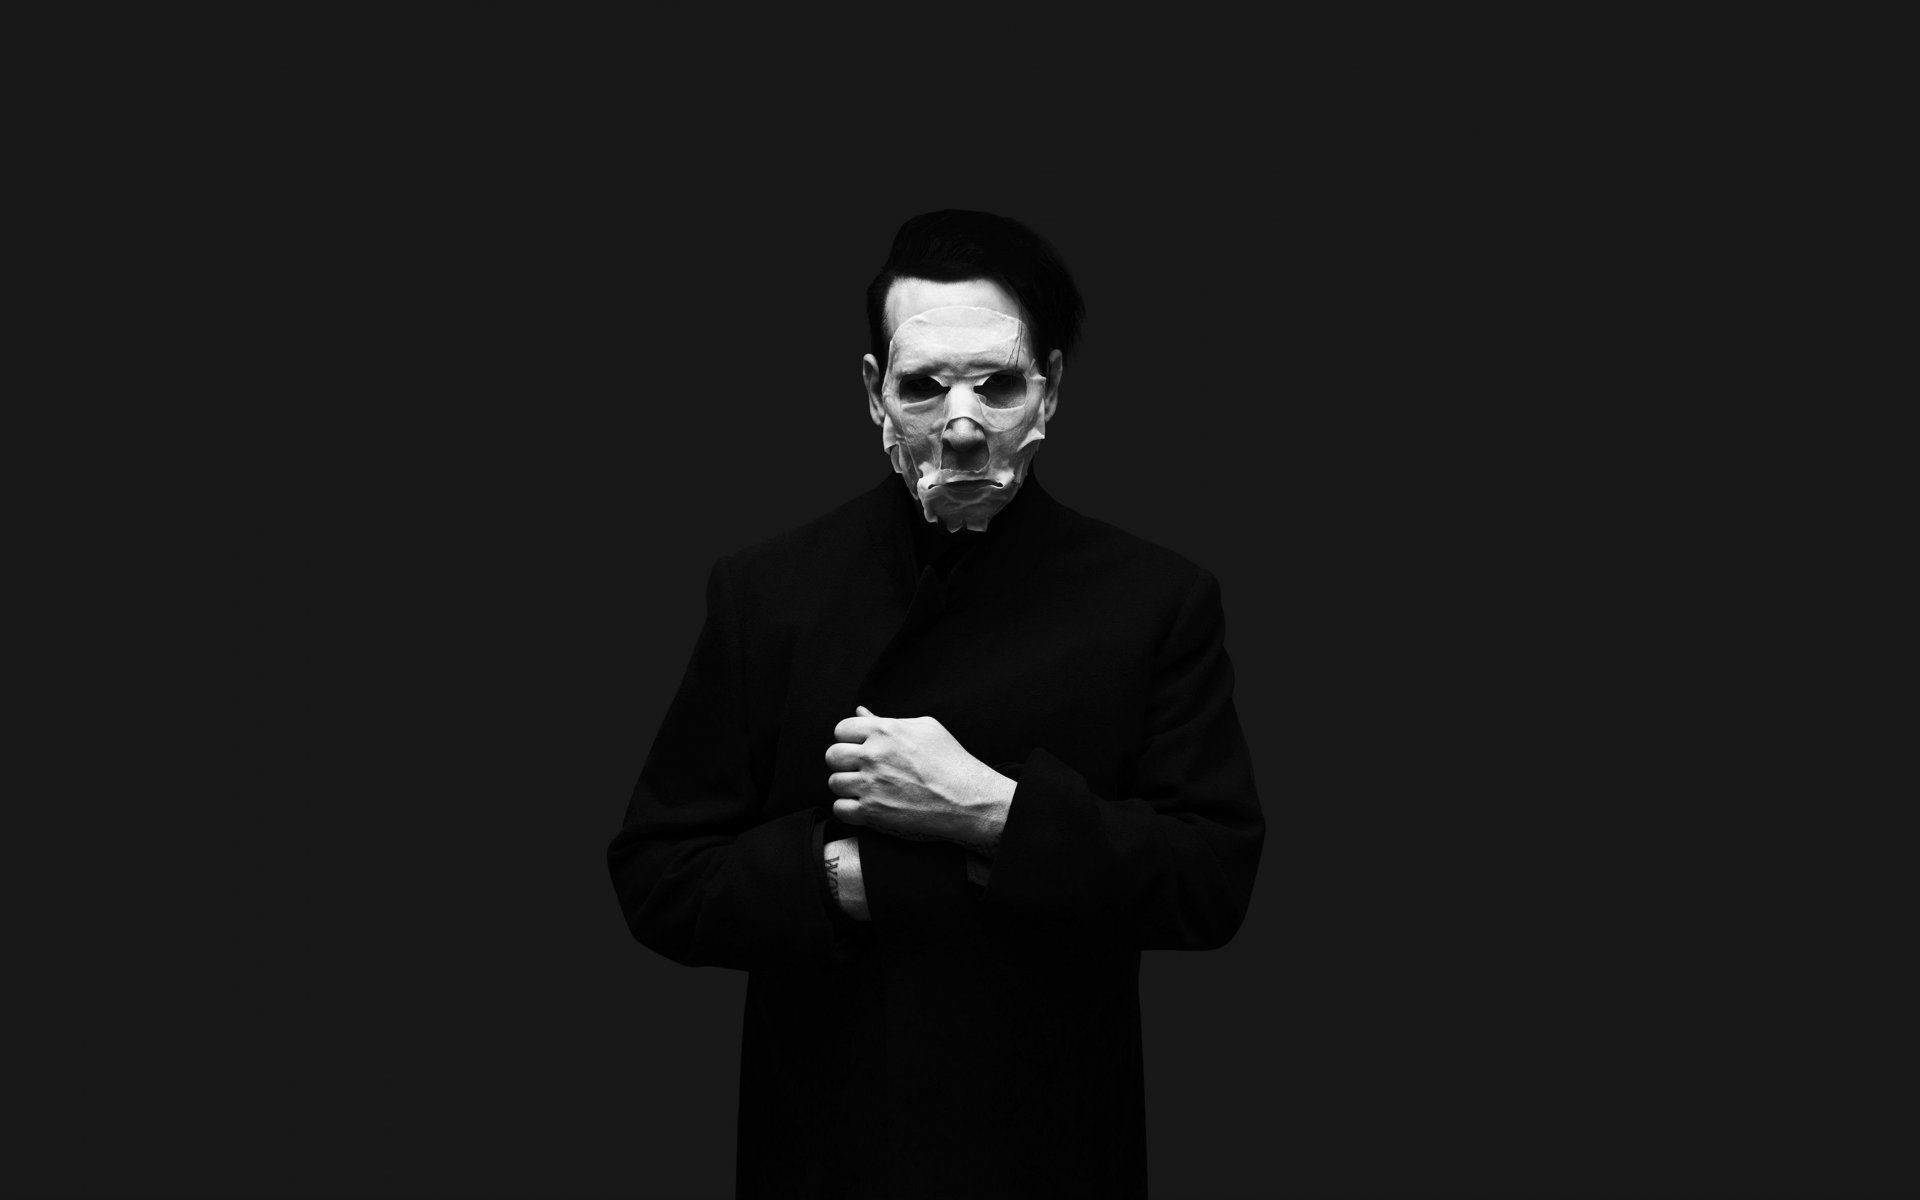 … marilyn manson wallpapers backgrounds …